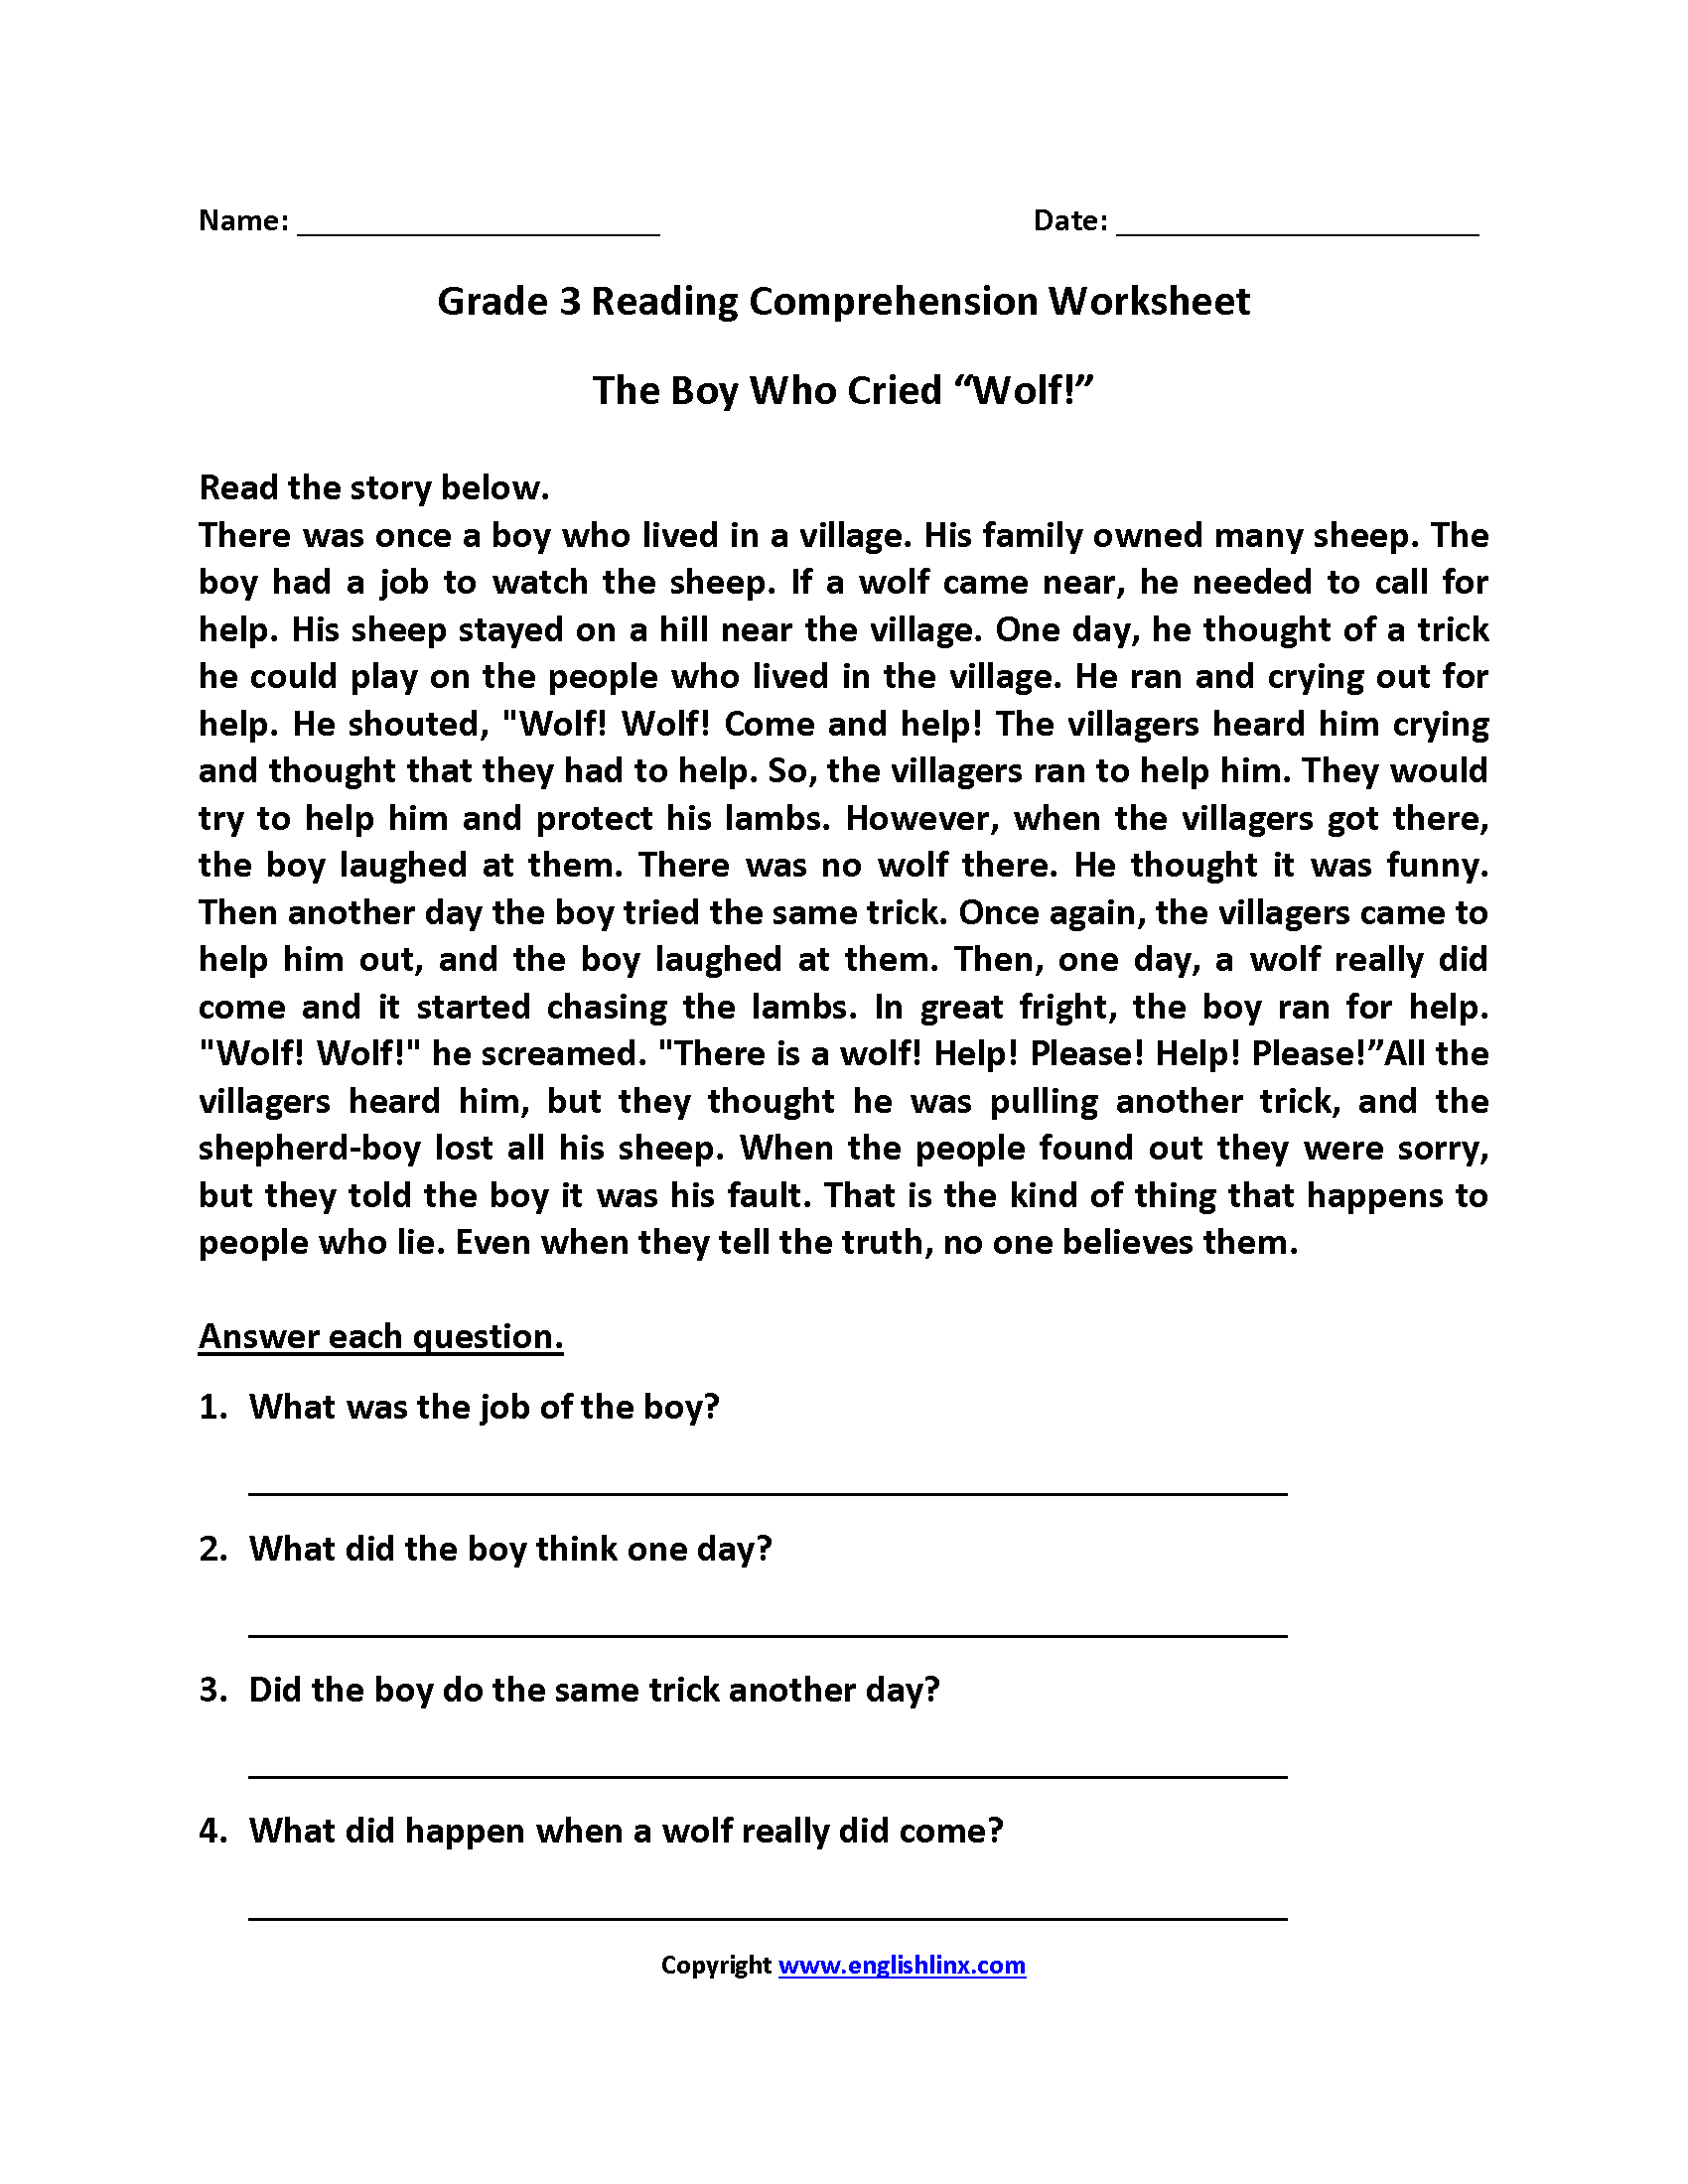 Worksheets 4th Grade Reading Comprehension Worksheets english worksheets reading third grade worksheets